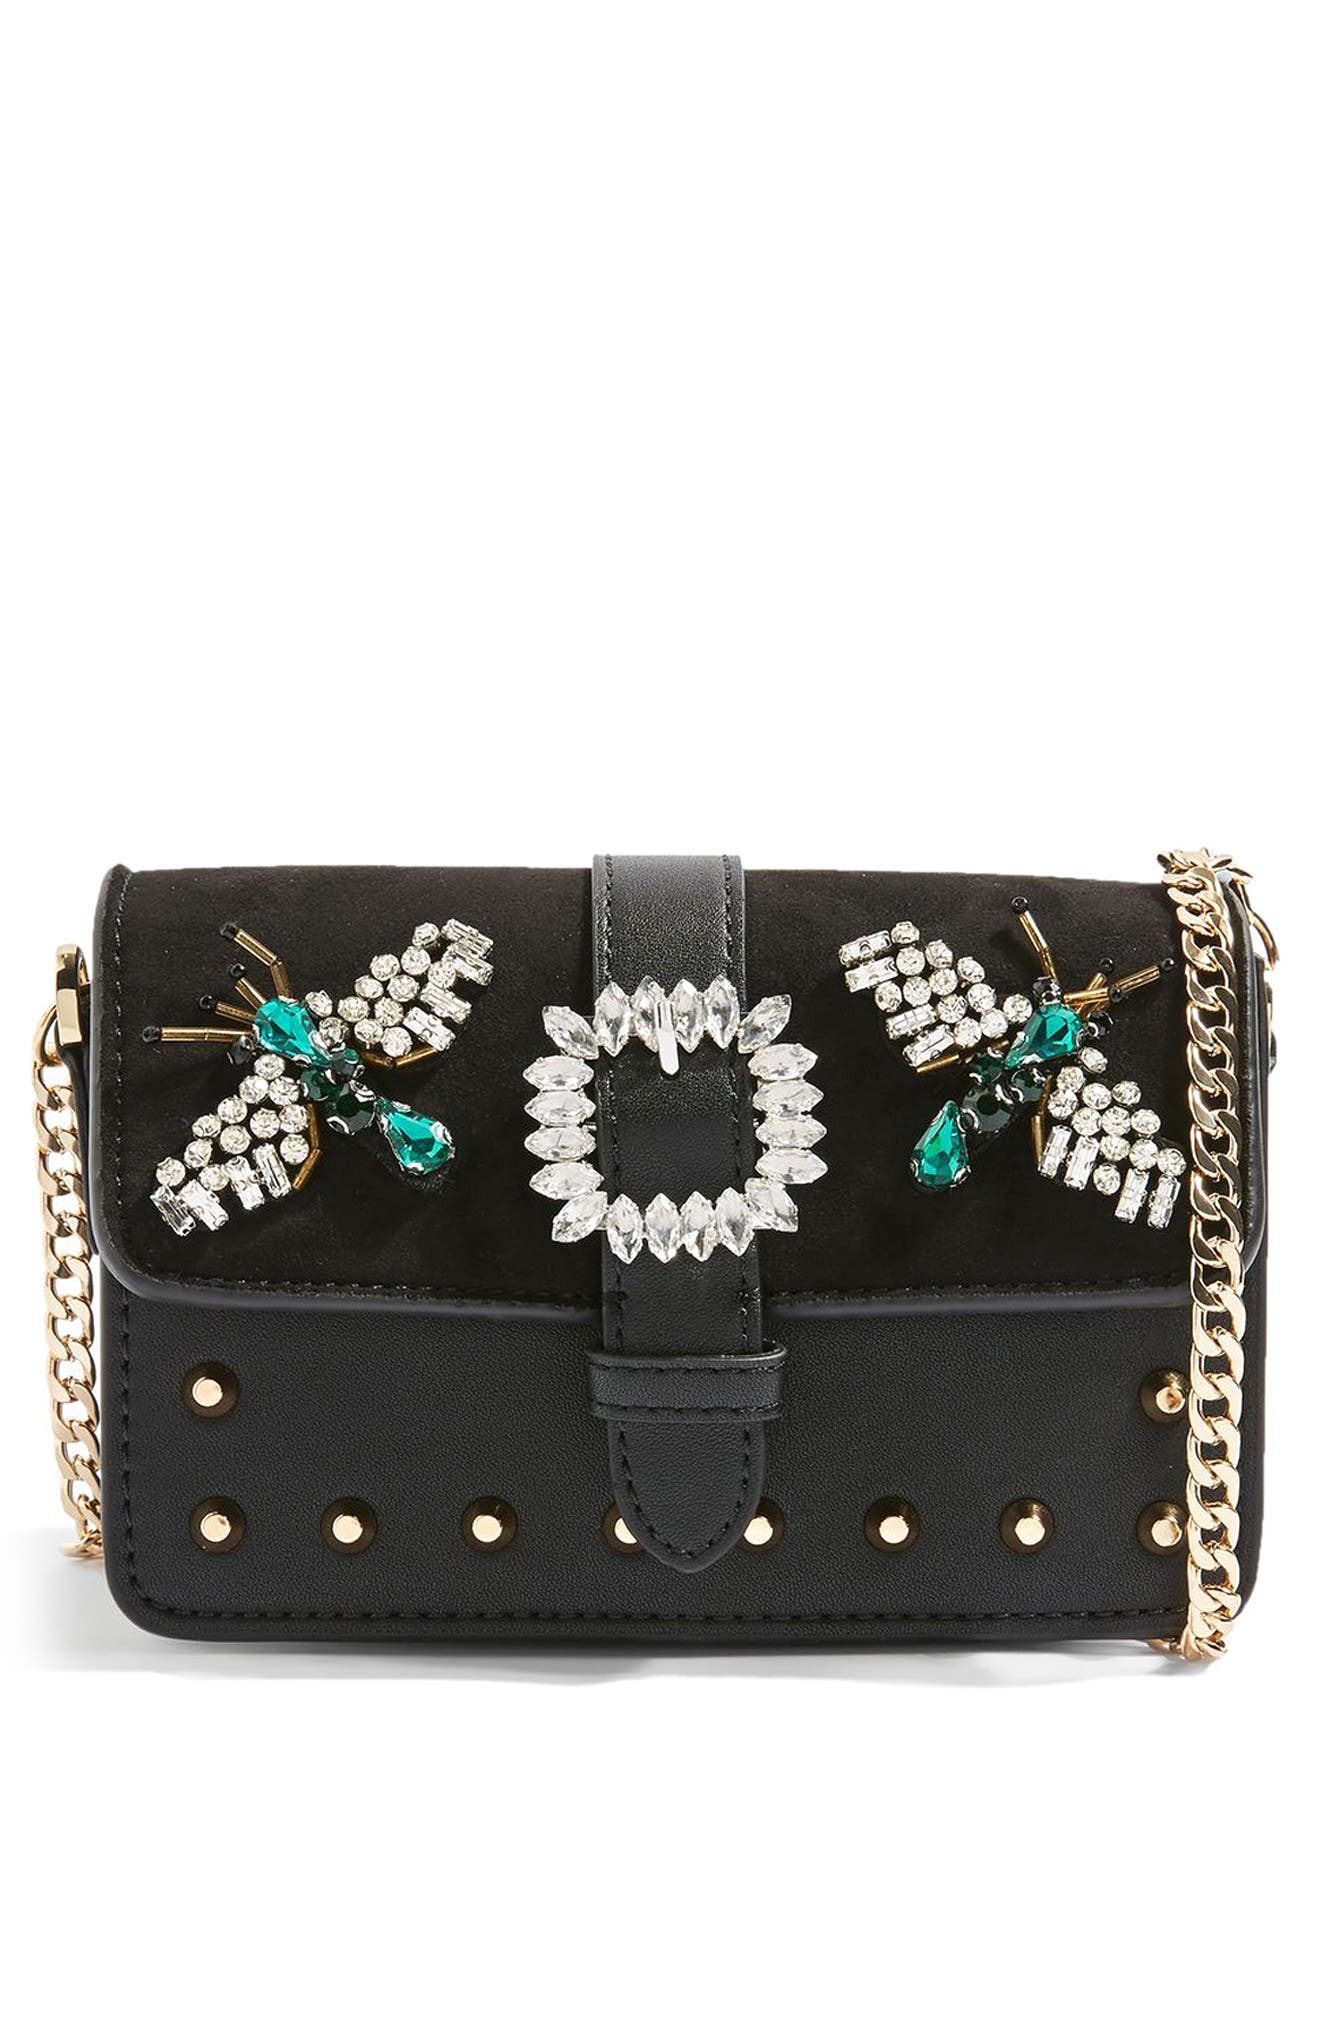 Topshop Rosie Jewel Embellished Faux Leather Crossbody Bag